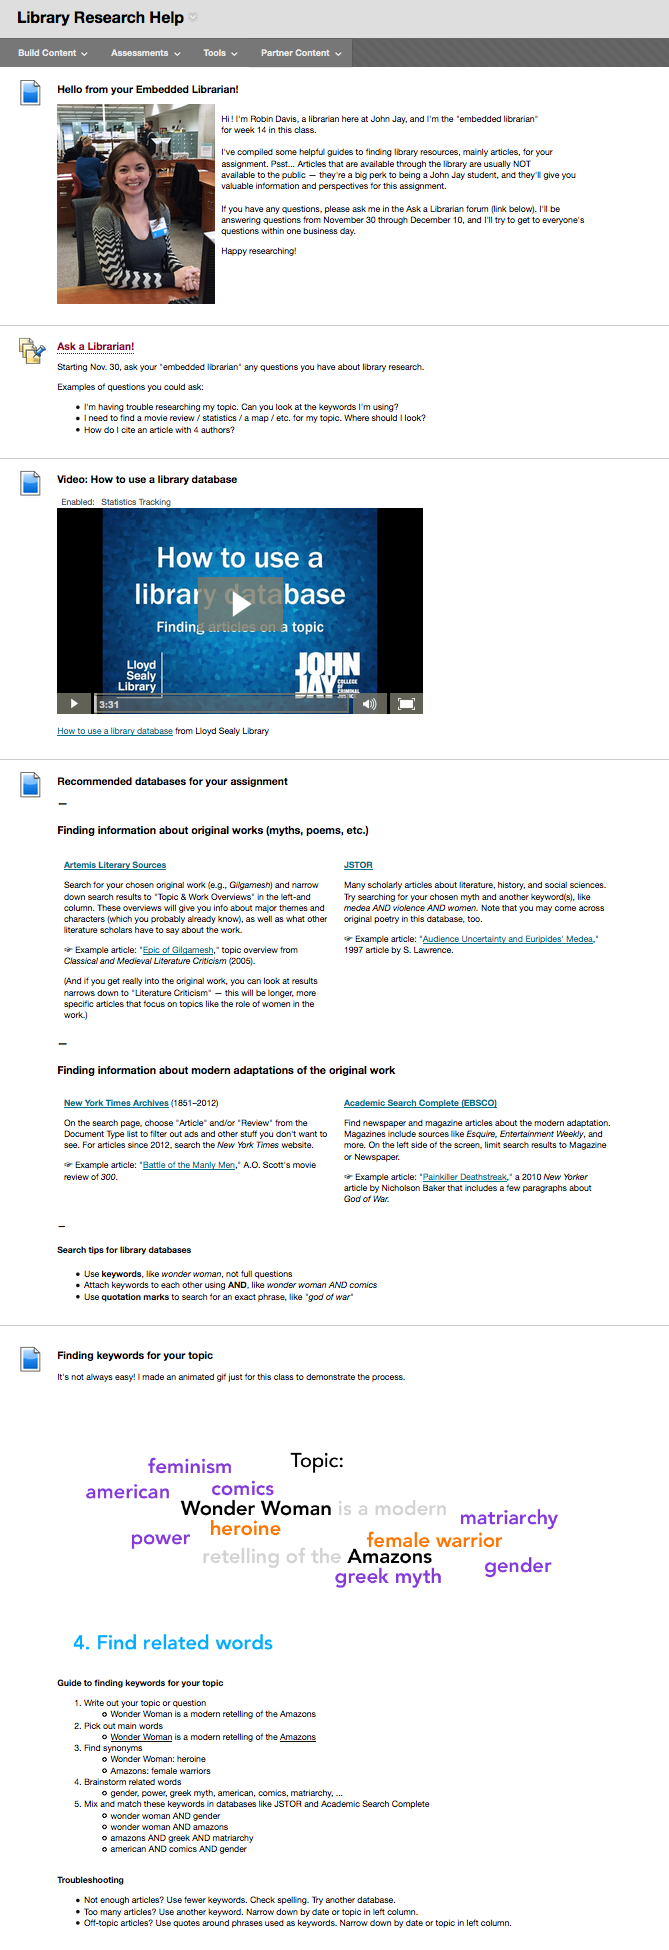 Example of content posted in a Blackboard course by a librarian: tutorial video, recommended databases, animated gif about keywords, citation information